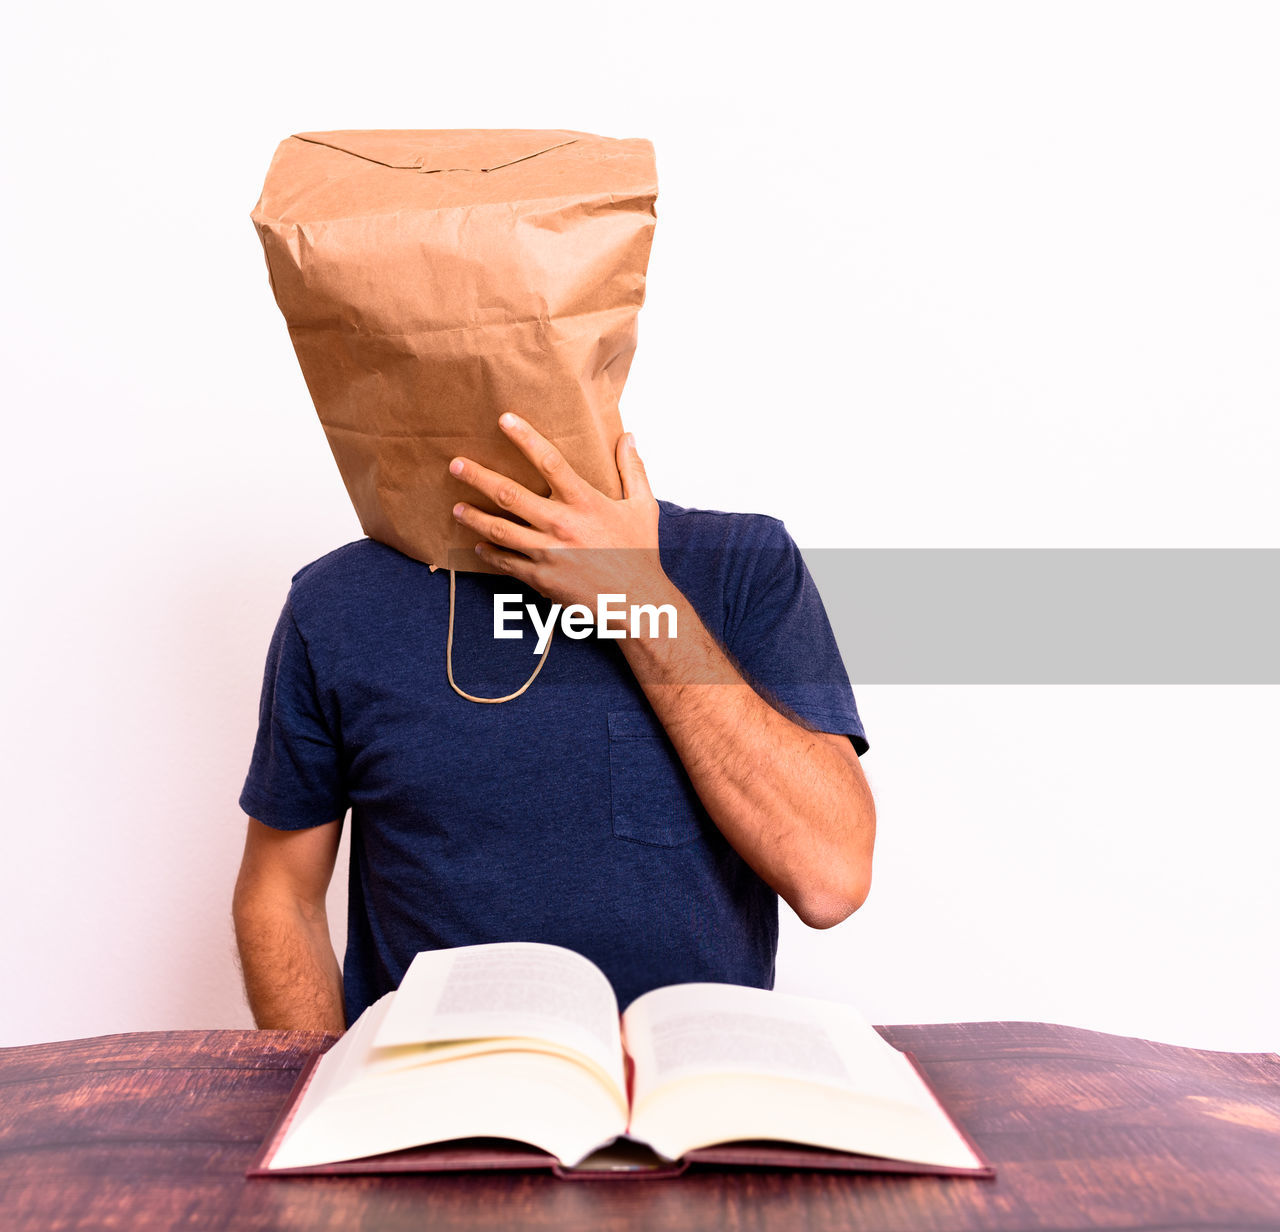 LOW SECTION OF PERSON ON BOOK AGAINST WHITE BACKGROUND